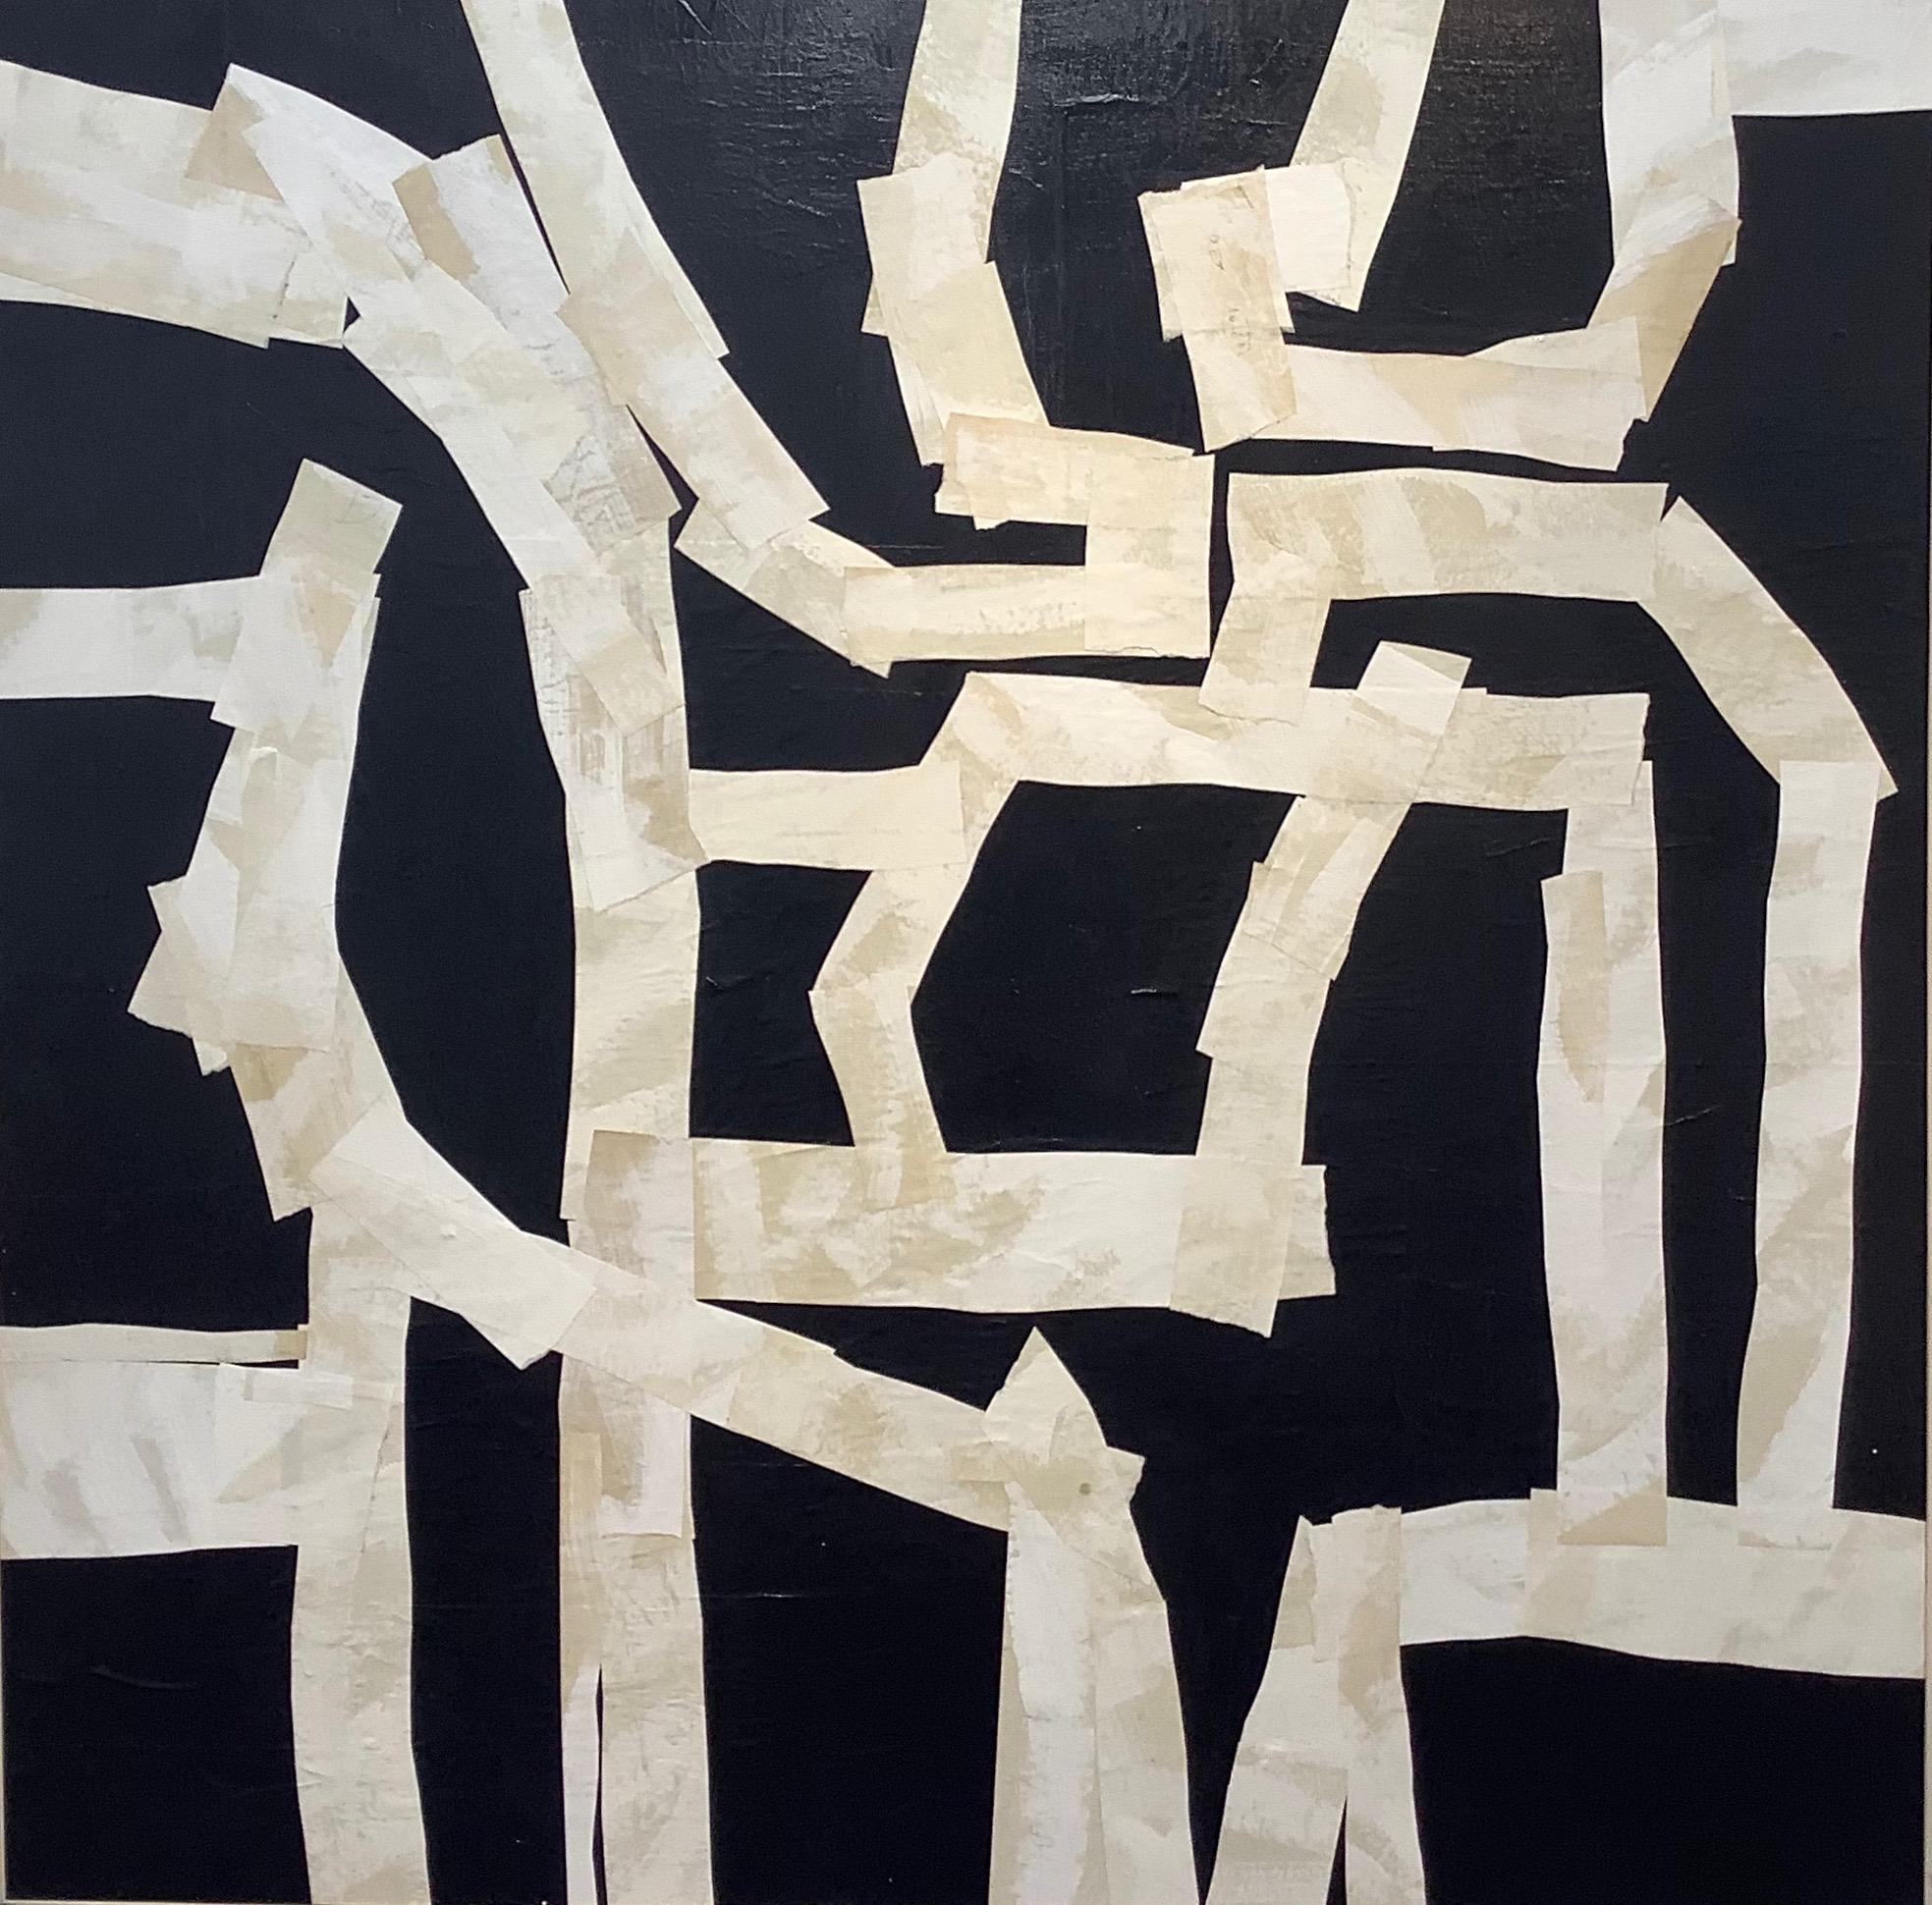 Armature III, Large Square Abstract Painted Paper Collage on Panel, Black, Ivory